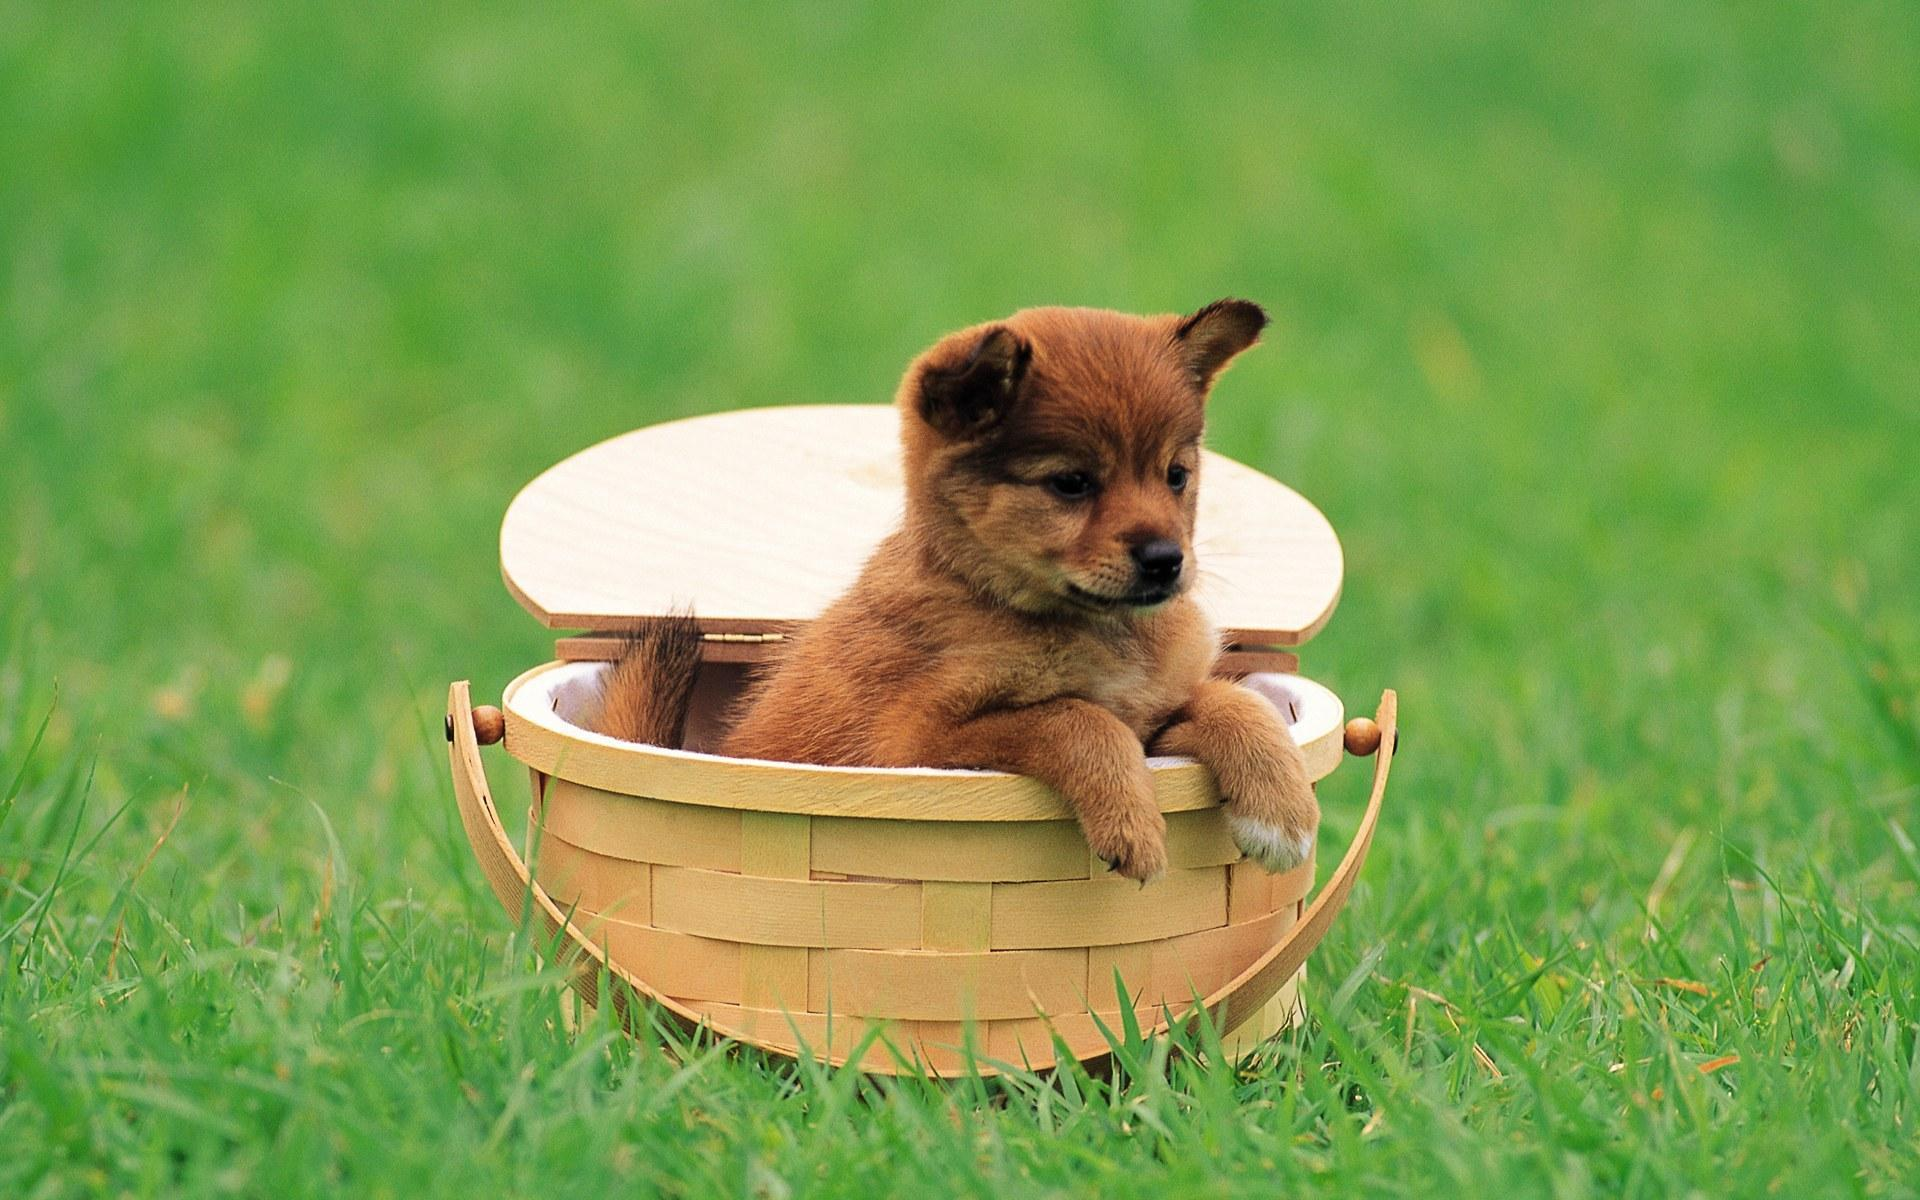 Puppies Cool Wallpaper Wallpaper High Definition High Quality